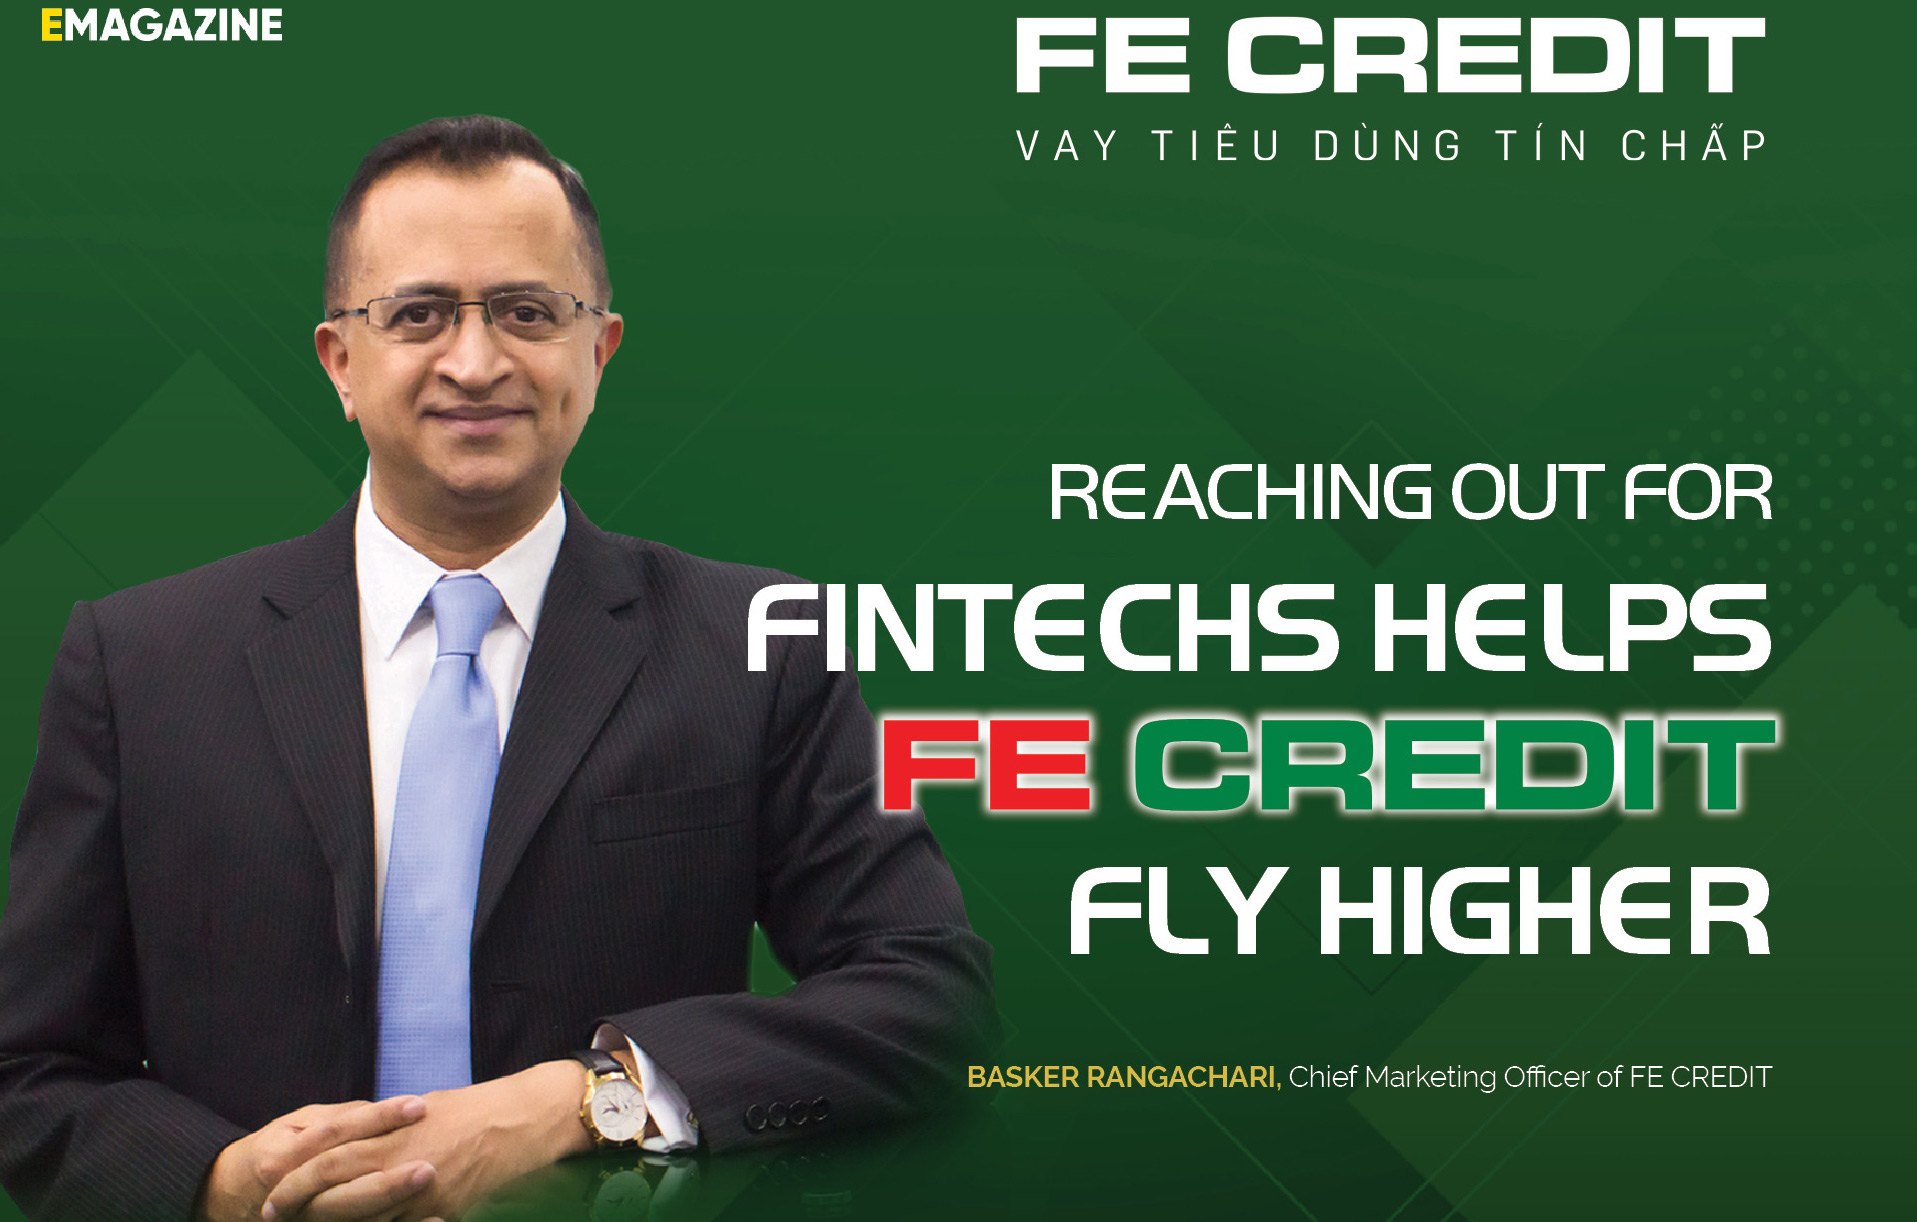 Reaching out for fintechs helps FE Credit fly higher